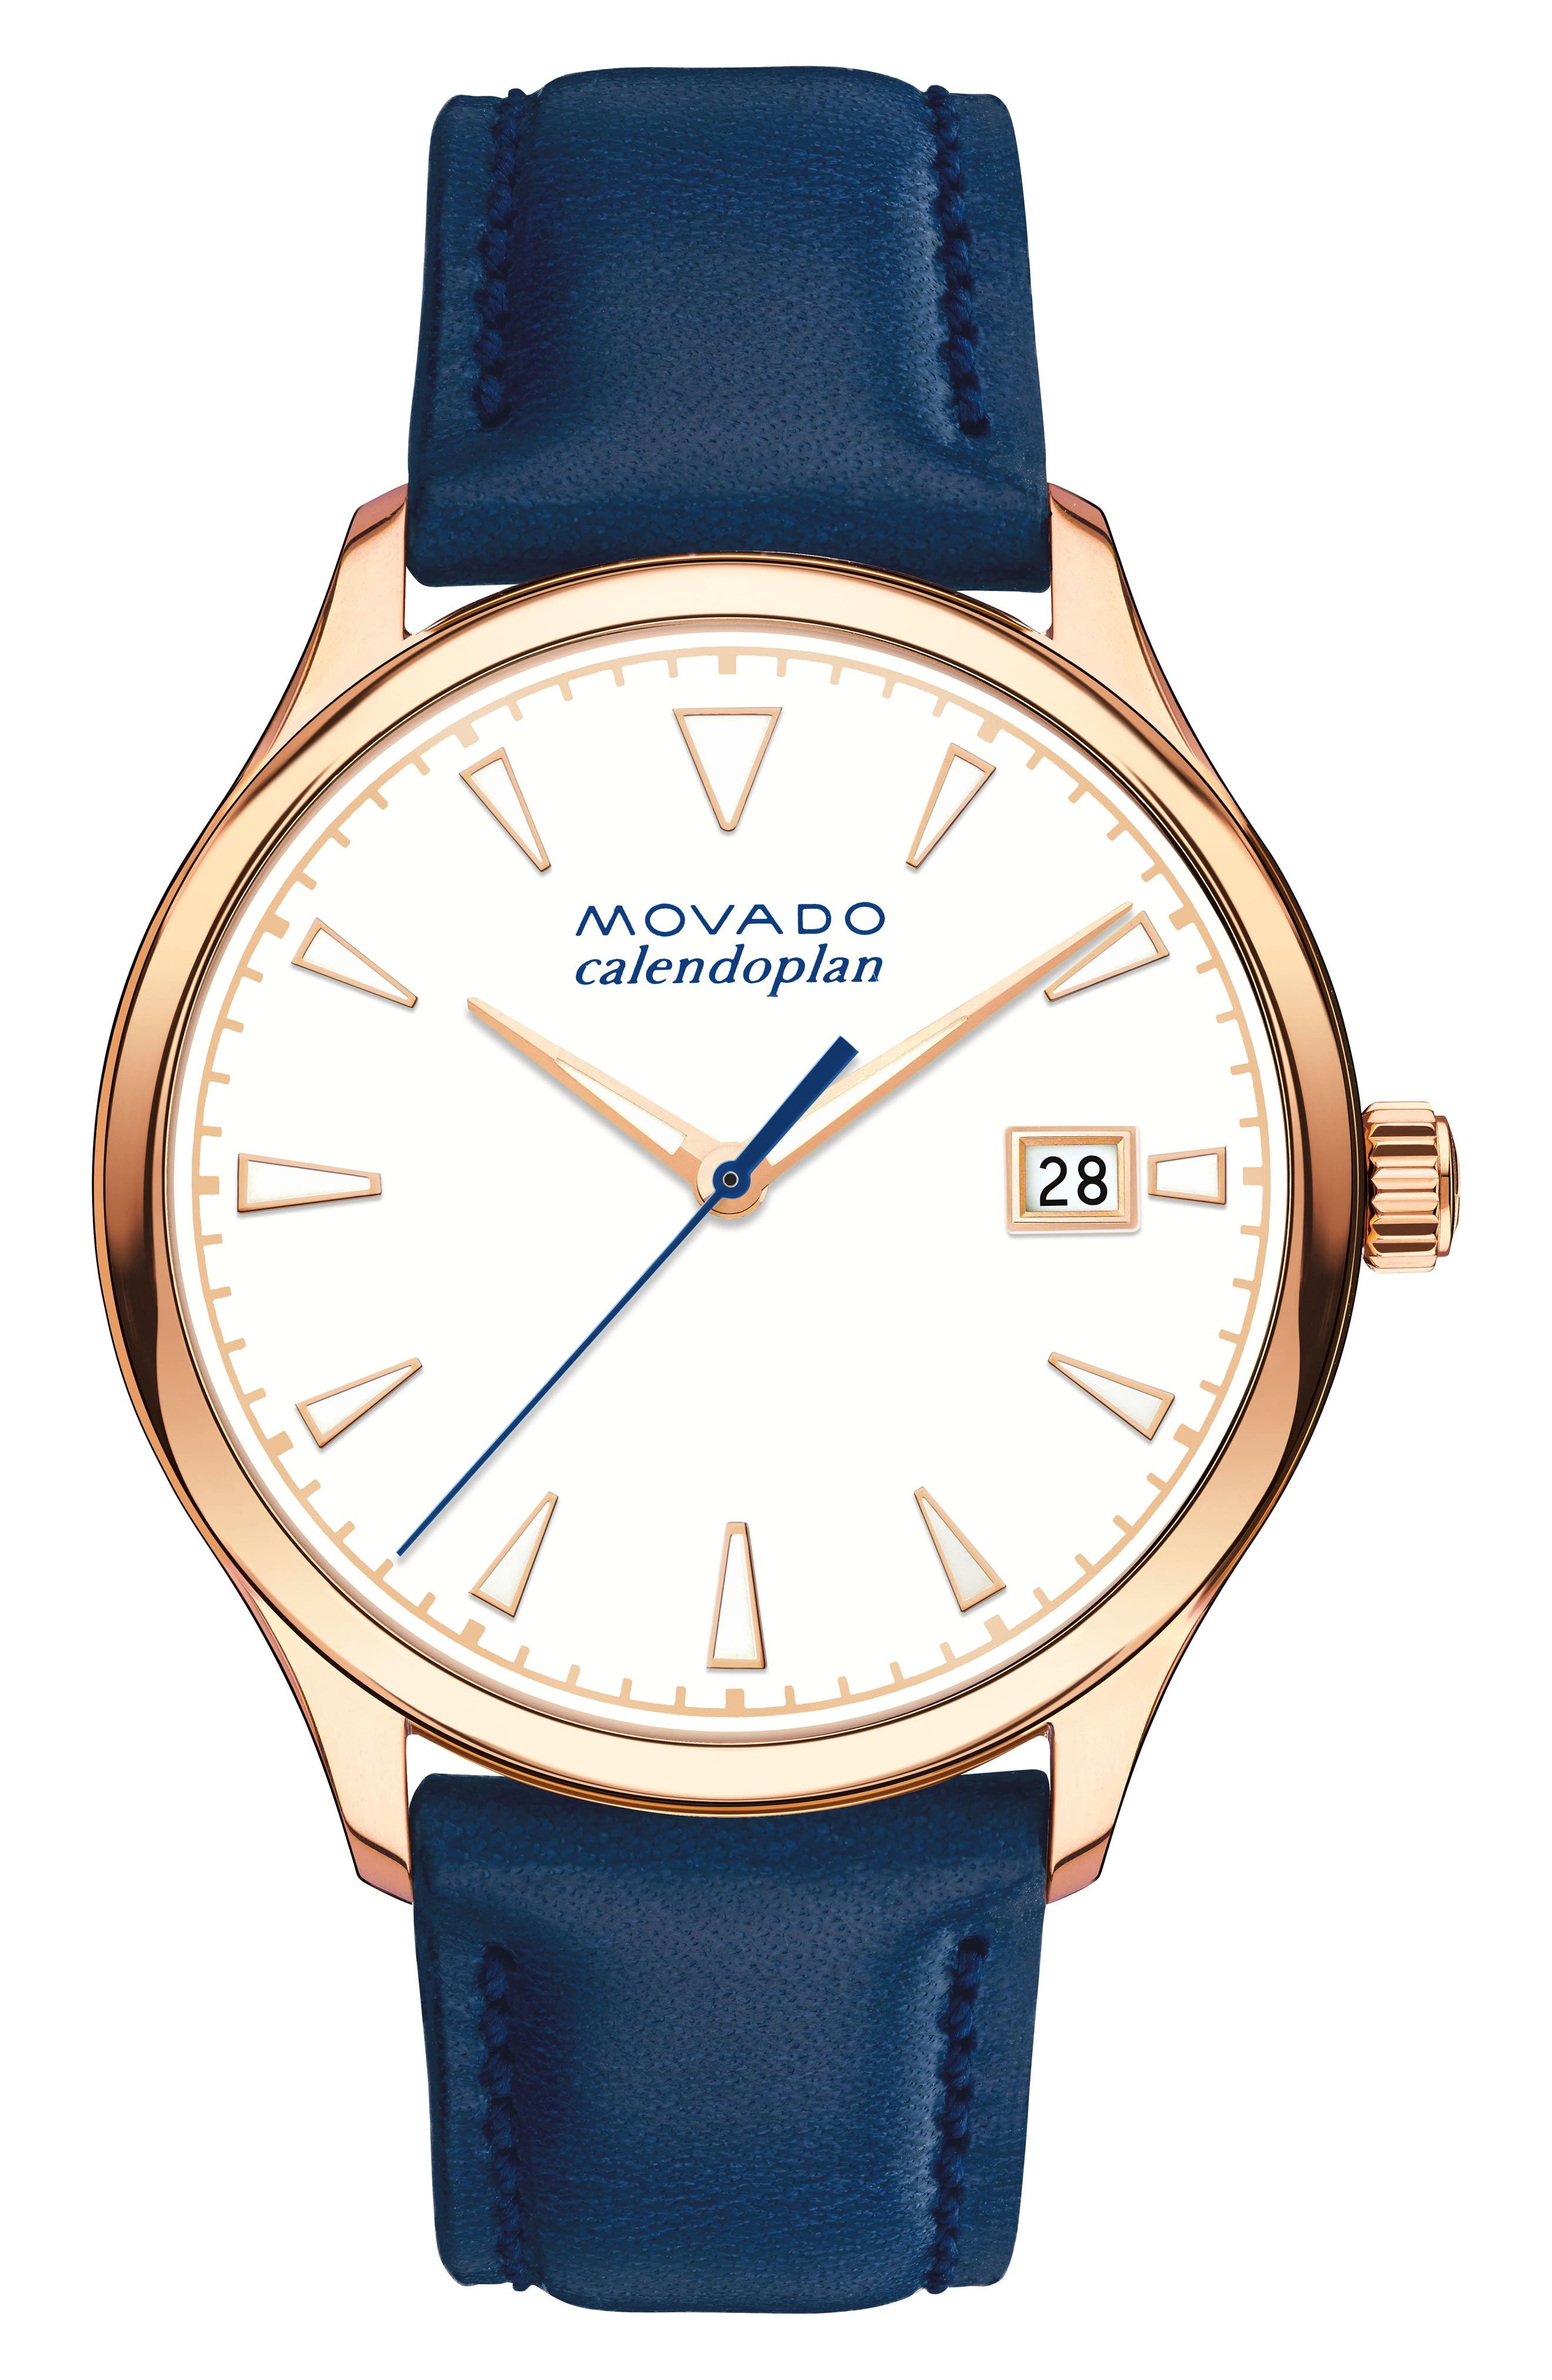 Alternate Image 1 Selected - Movado Heritage Calendoplan Leather Strap Watch, 36mm